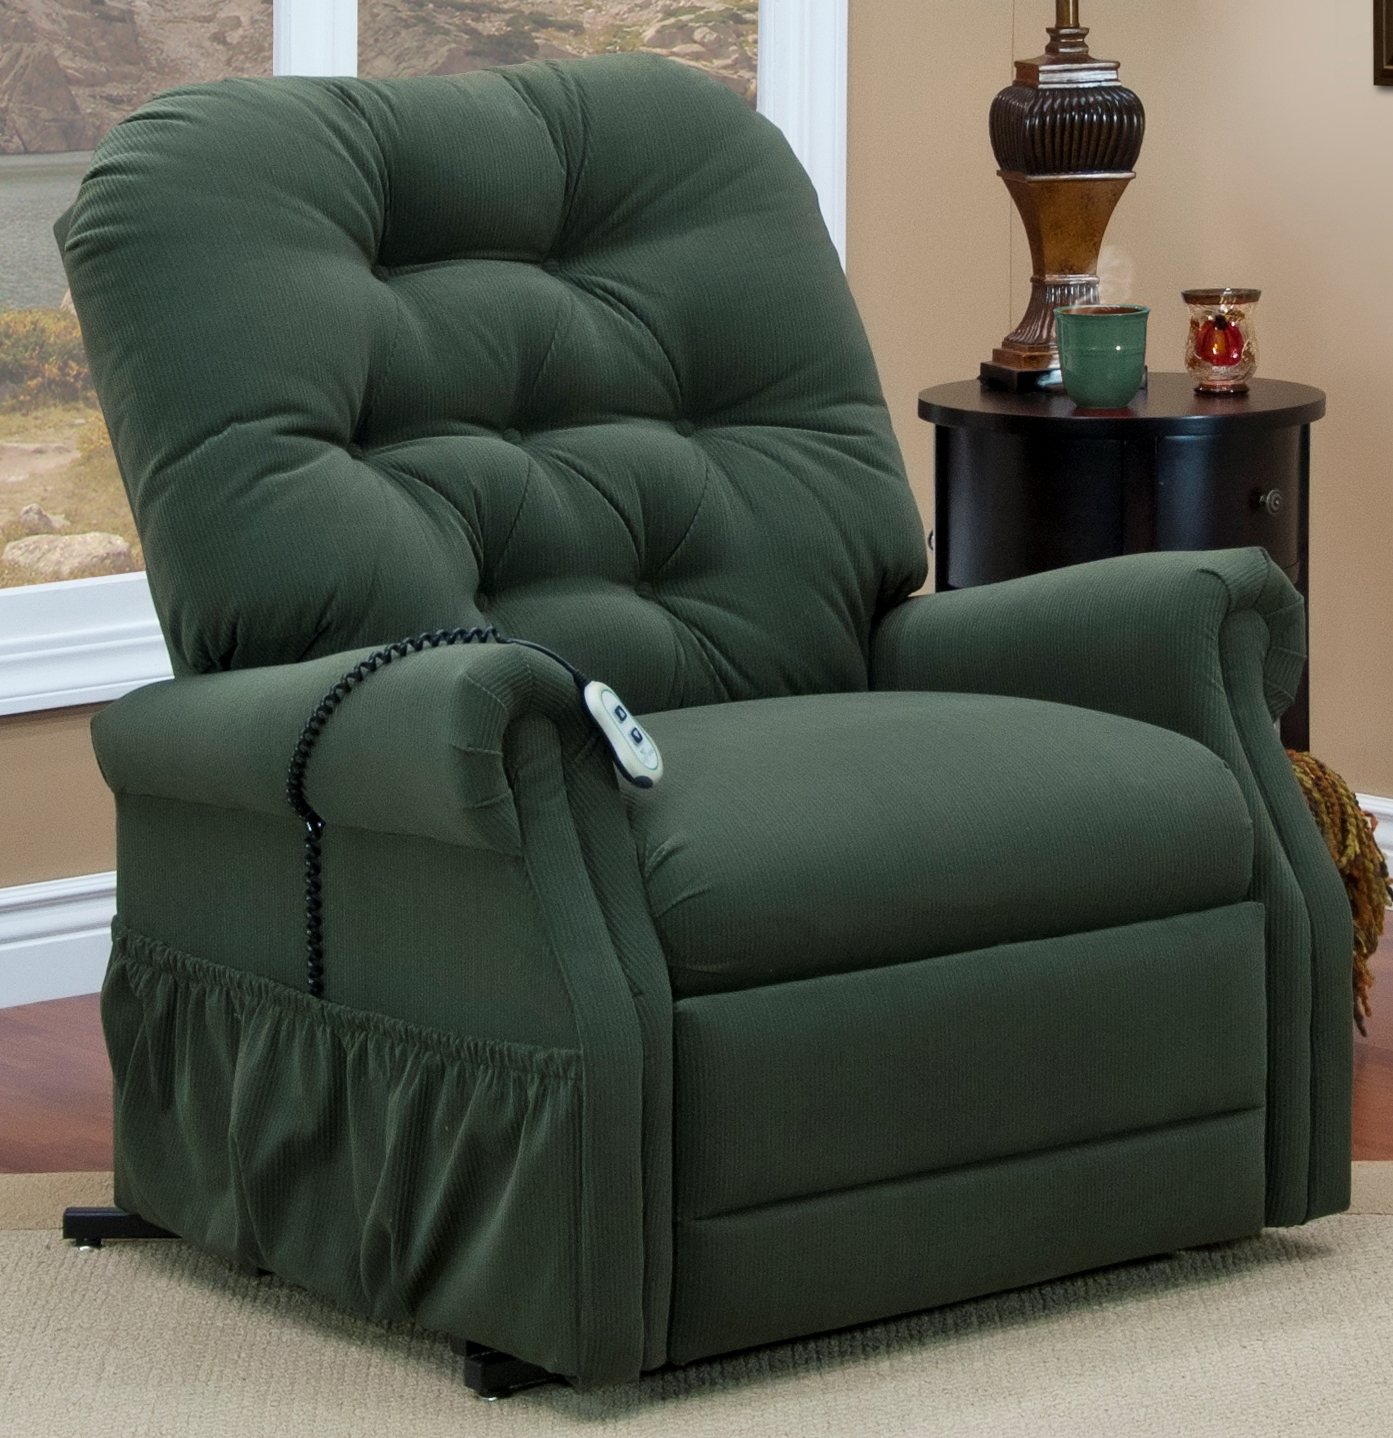 3555 HEAVY DUTY Two-Way Reclining Lift Chair by Med-Lift - Choice ...